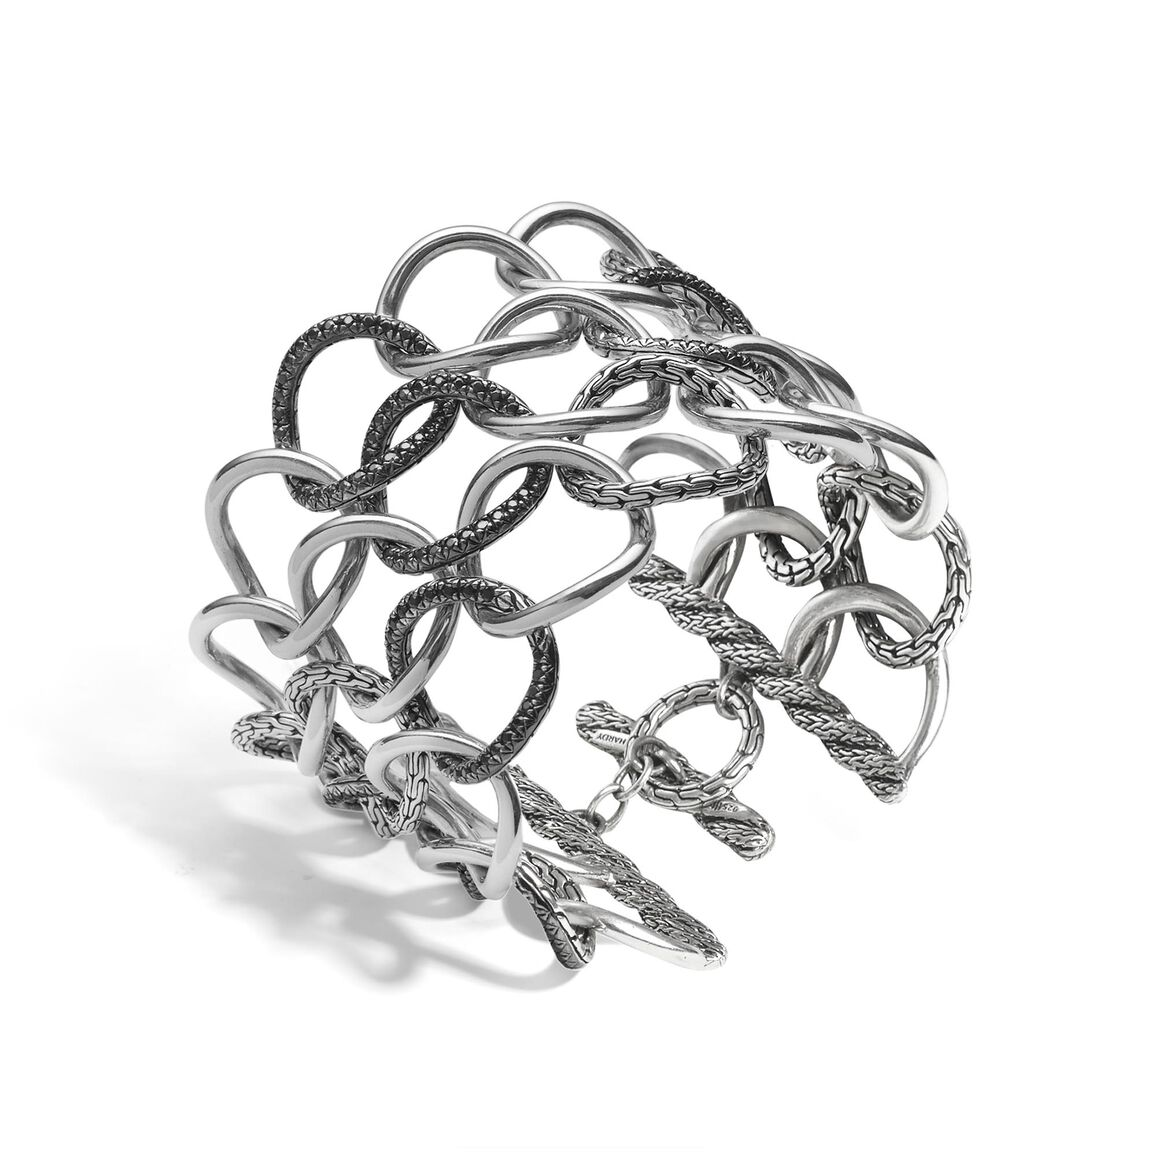 Classic Chain Open Link Bracelet in Silver with Gemstone